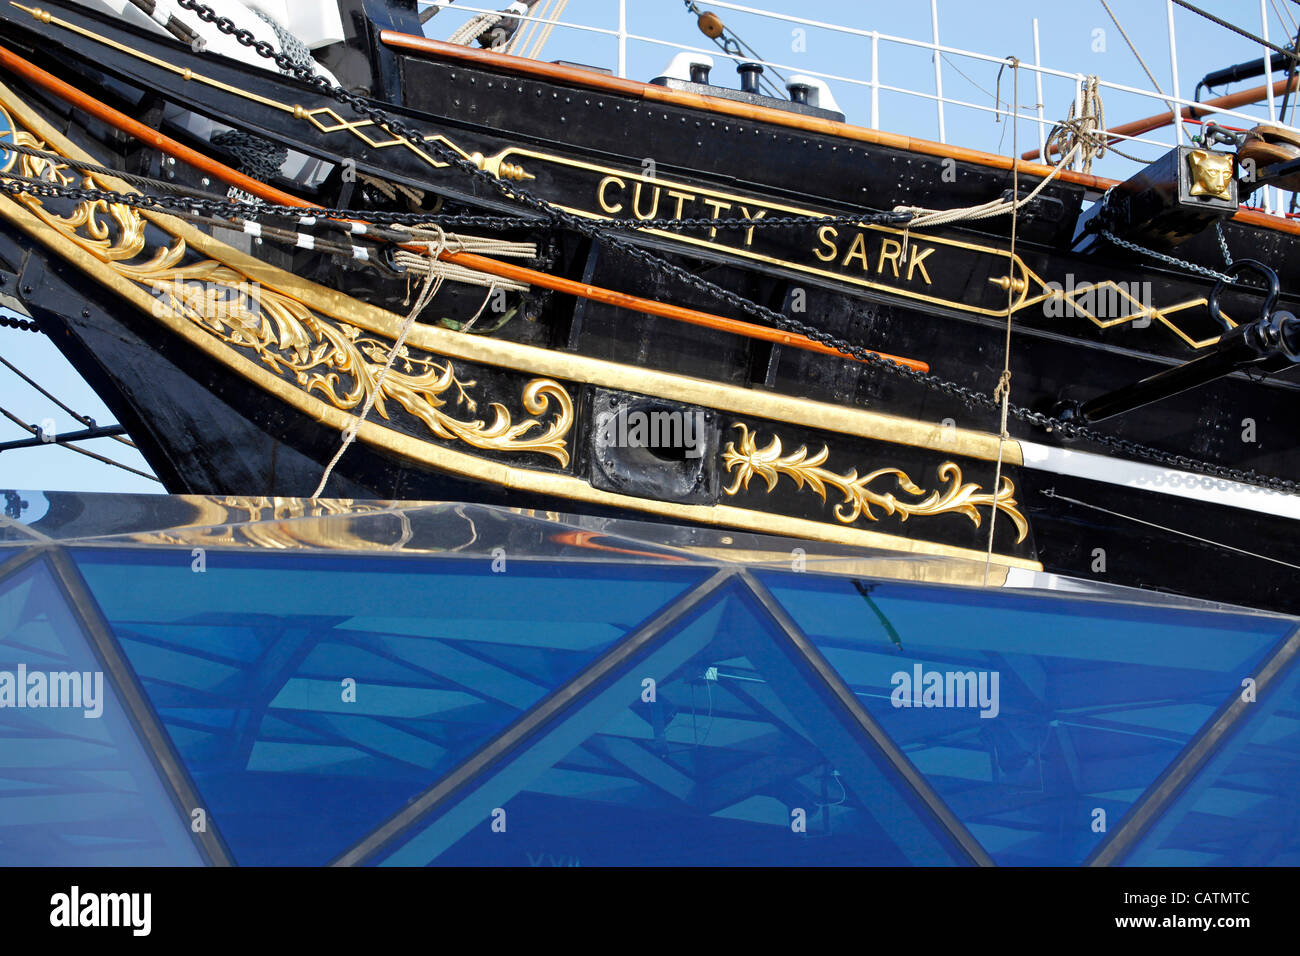 London, UK. Saturday 21st April 2012. Restoration work on the Cutty Sark is completed and workers remove barriers Stock Photo